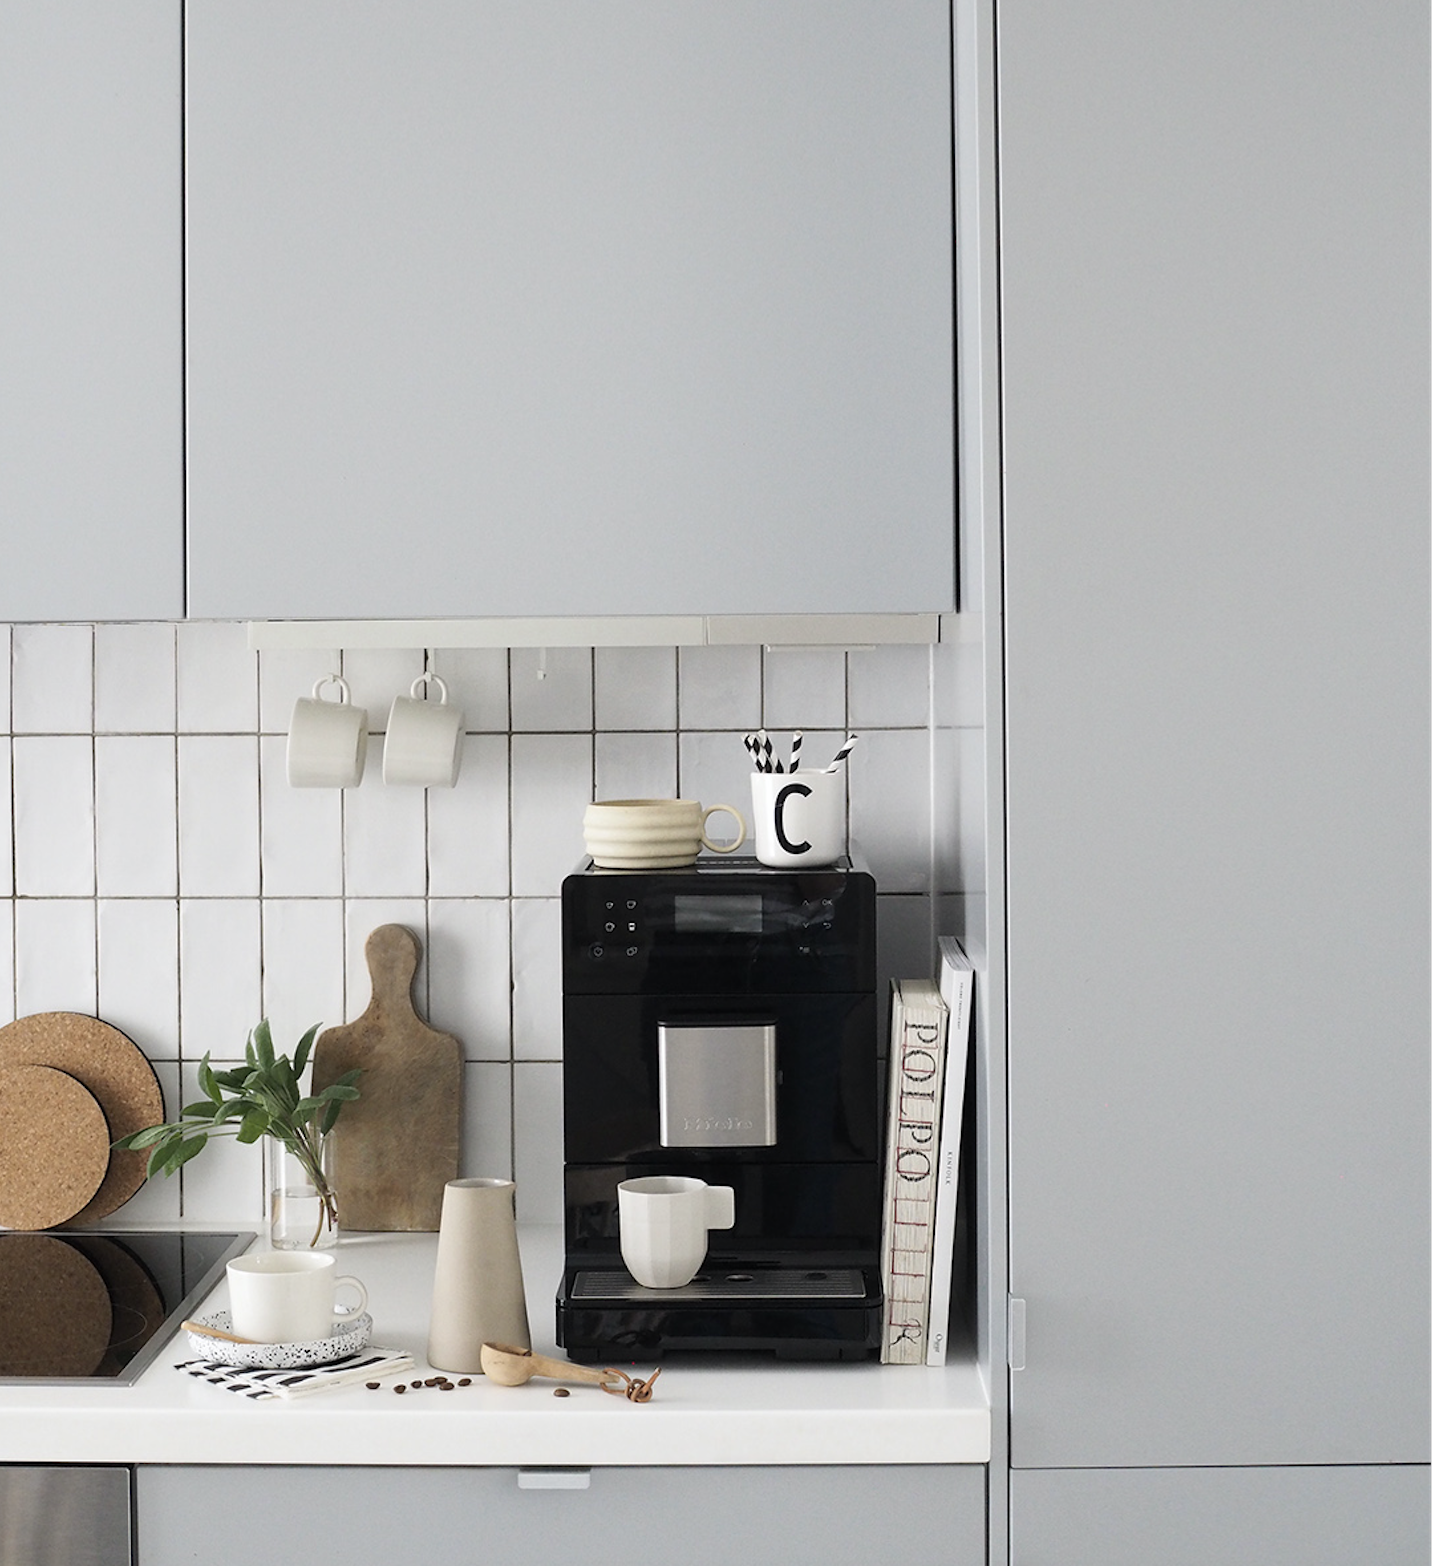 Cate St Hill Minimal Kitchens Coffee Machine